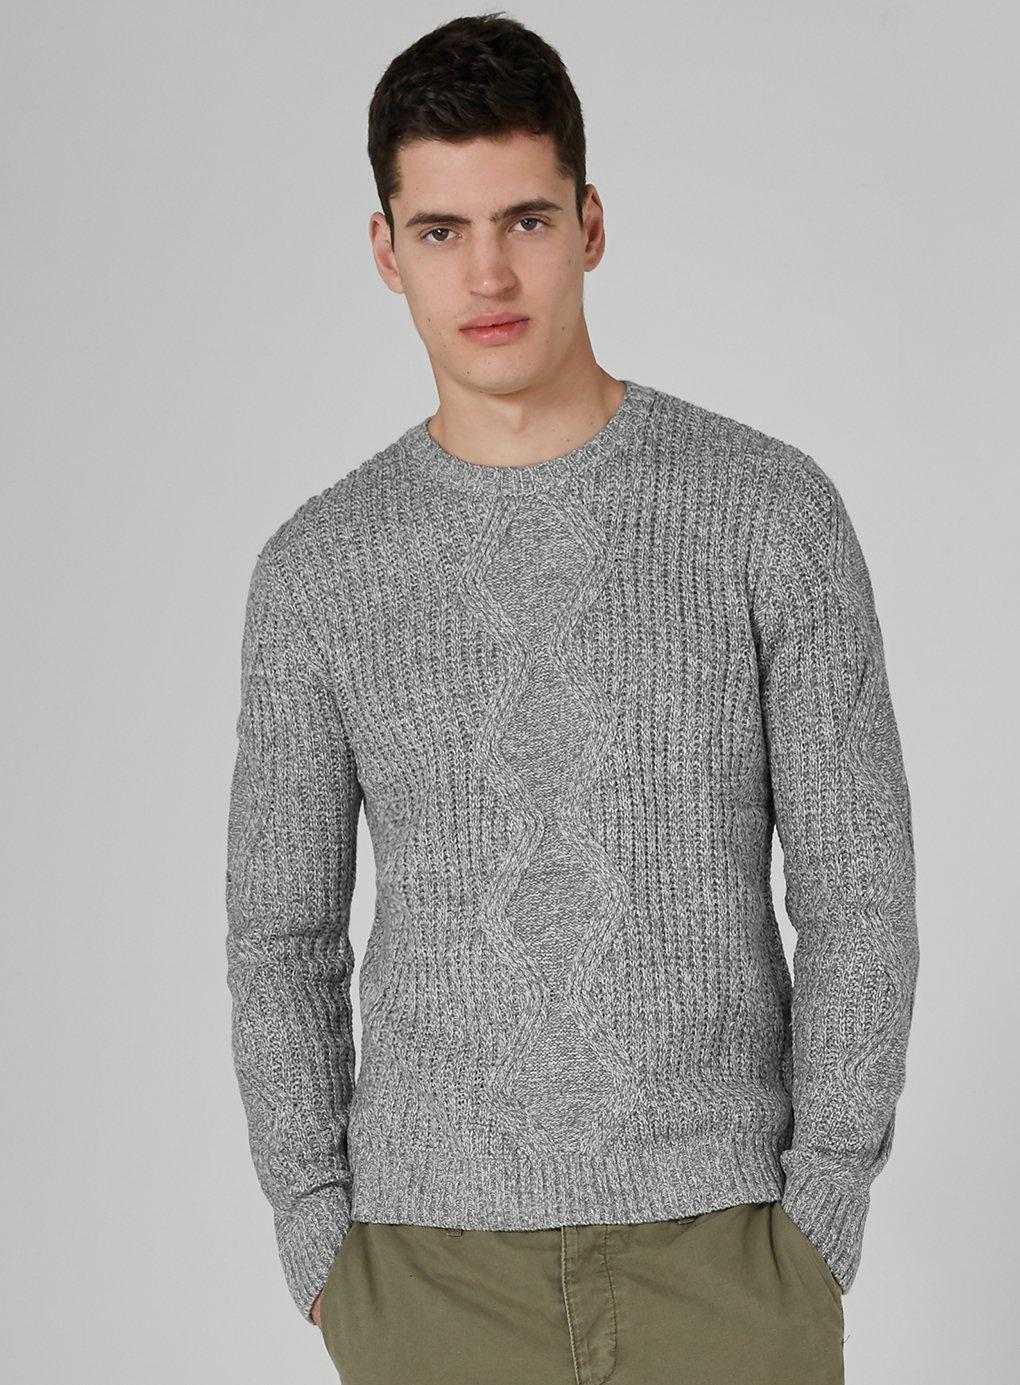 f1cb4d717f65 Topman And White Twist Cable Knit Jumper in Gray for Men - Lyst